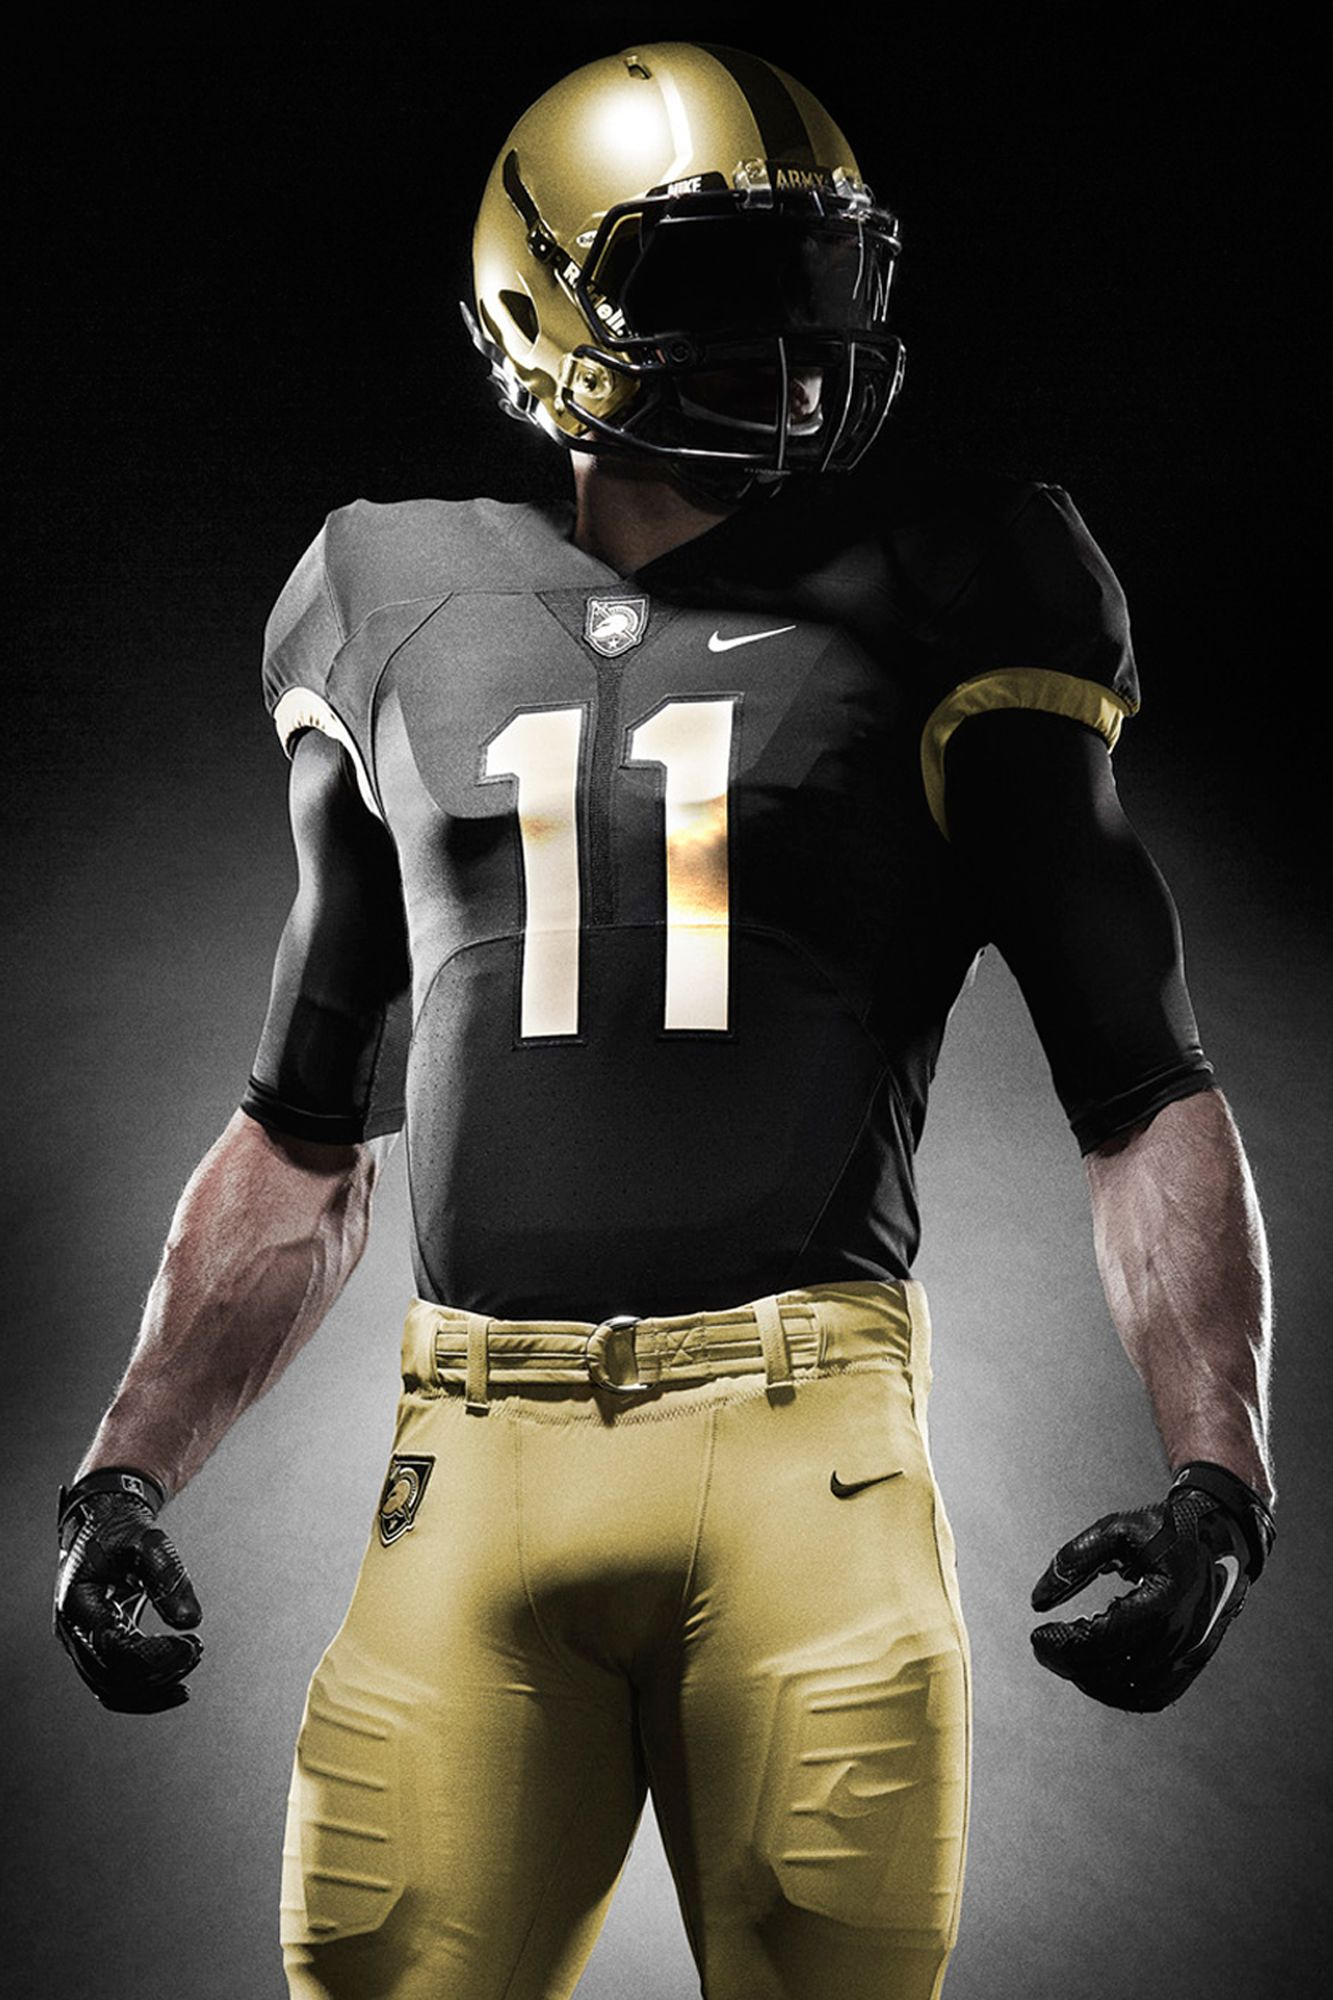 2015 Army West Point uniforms by Nike - Football  8a7e3ba4e